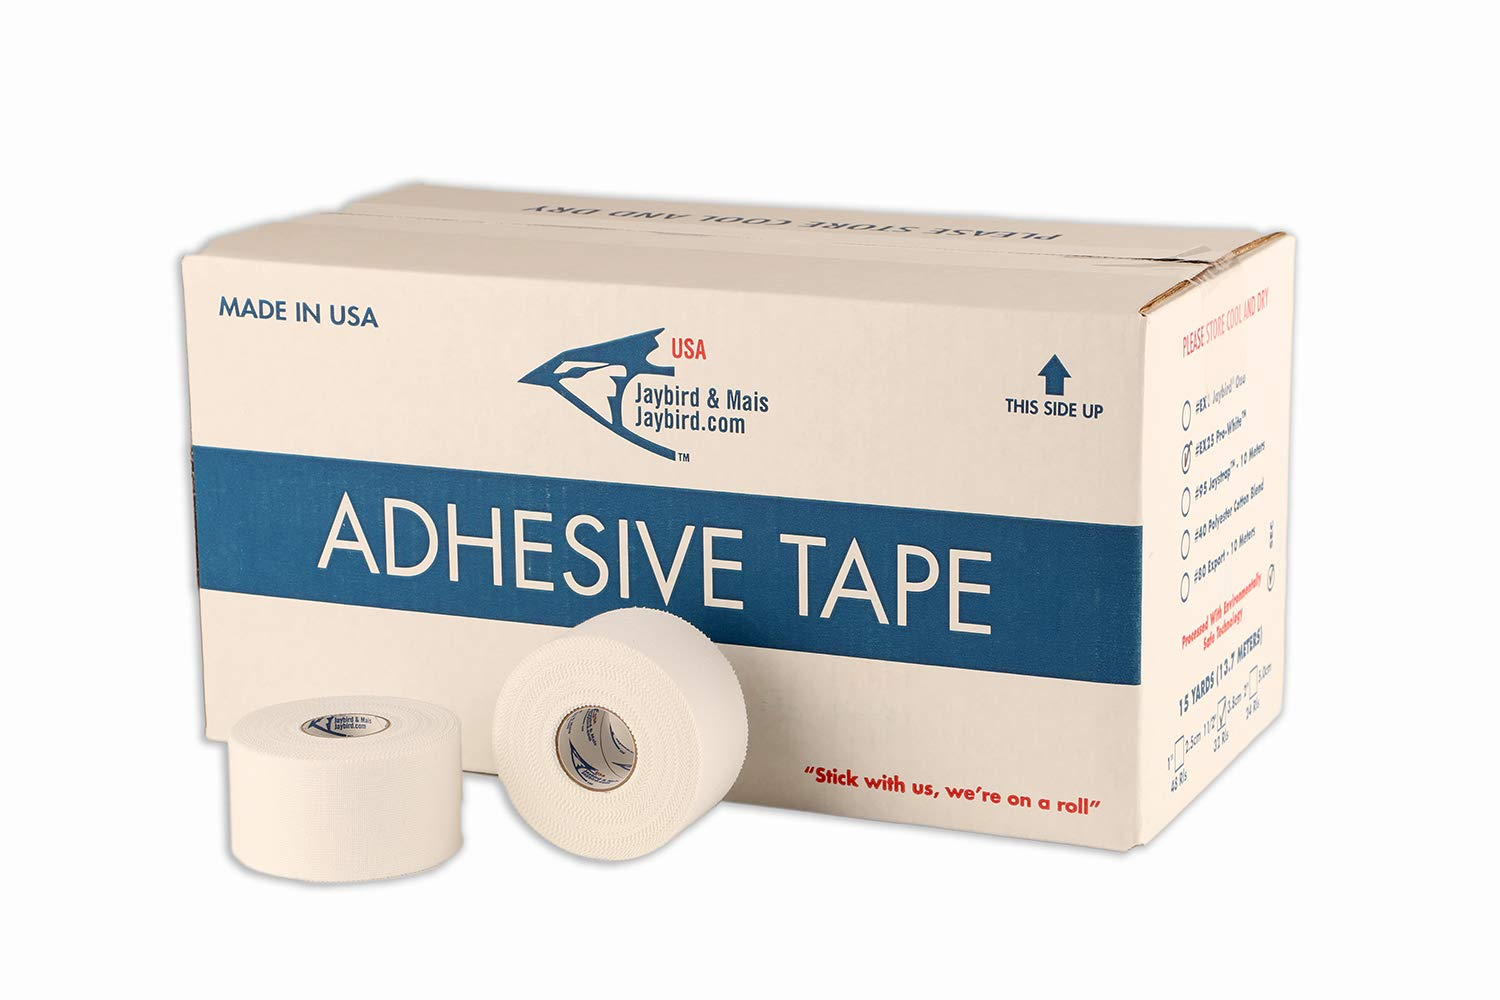 Jaybird & Mais - EX25 PRO-White™ Athletic Tape - 32 ROLL CASE - Each ROLL is 1½'' x 15 Yards